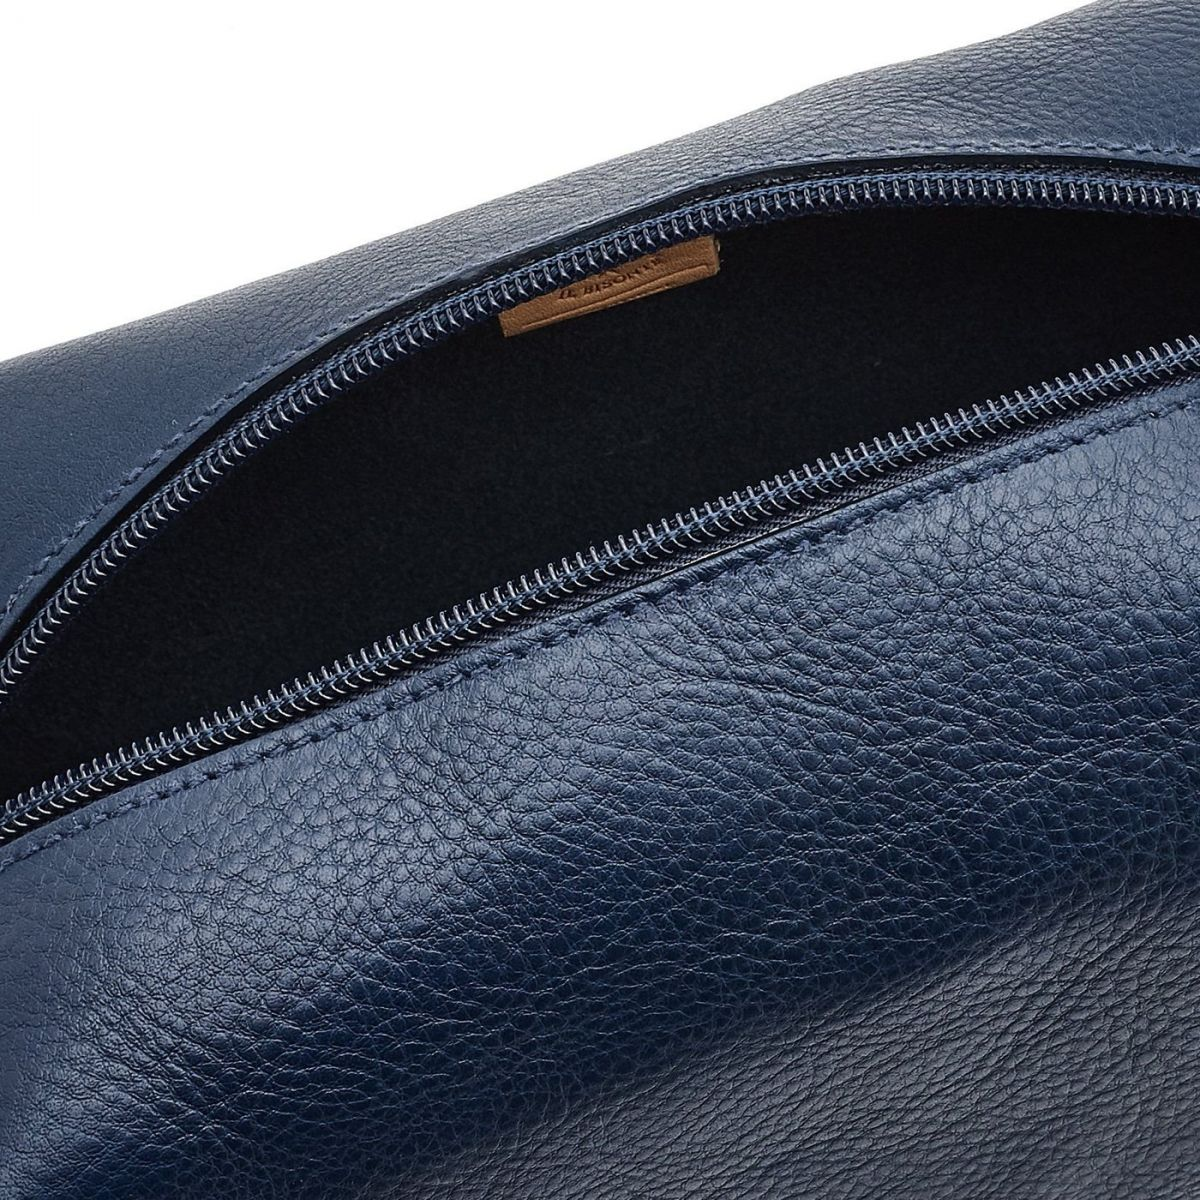 Case  in Cowhide Leather SCA048 color Blue | Details